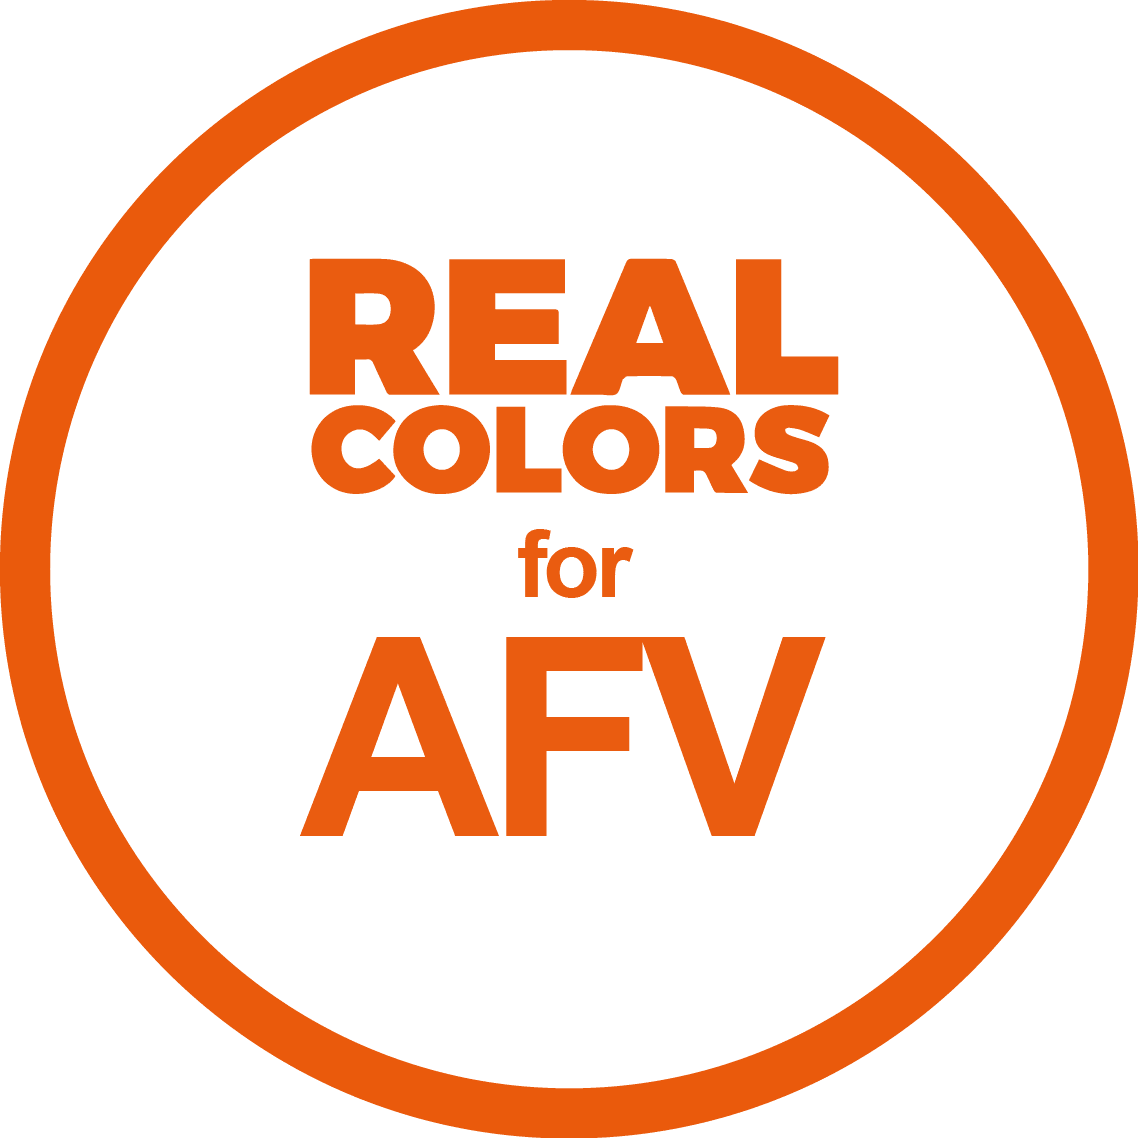 REAL COLORS AFV AK-INTERACTIVE PAINT